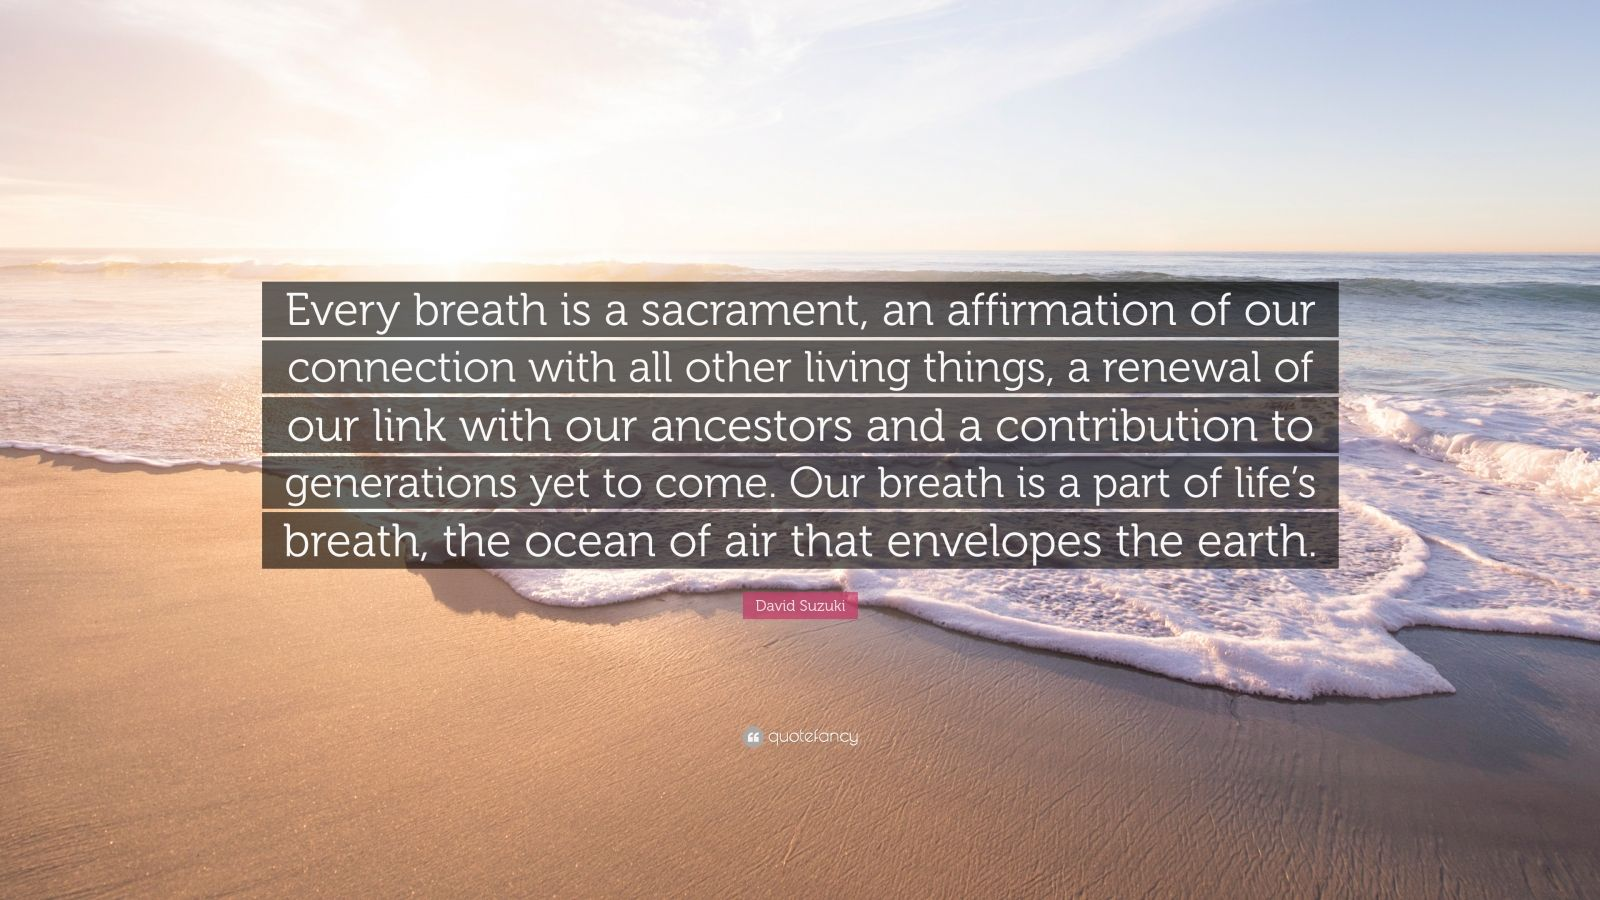 """David Suzuki Quote: """"Every breath is a sacrament, an affirmation of our connection with all other living things, a renewal of our link with our ancestors and a contribution to generations yet to come. Our breath is a part of life's breath, the ocean of air that envelopes the earth."""""""